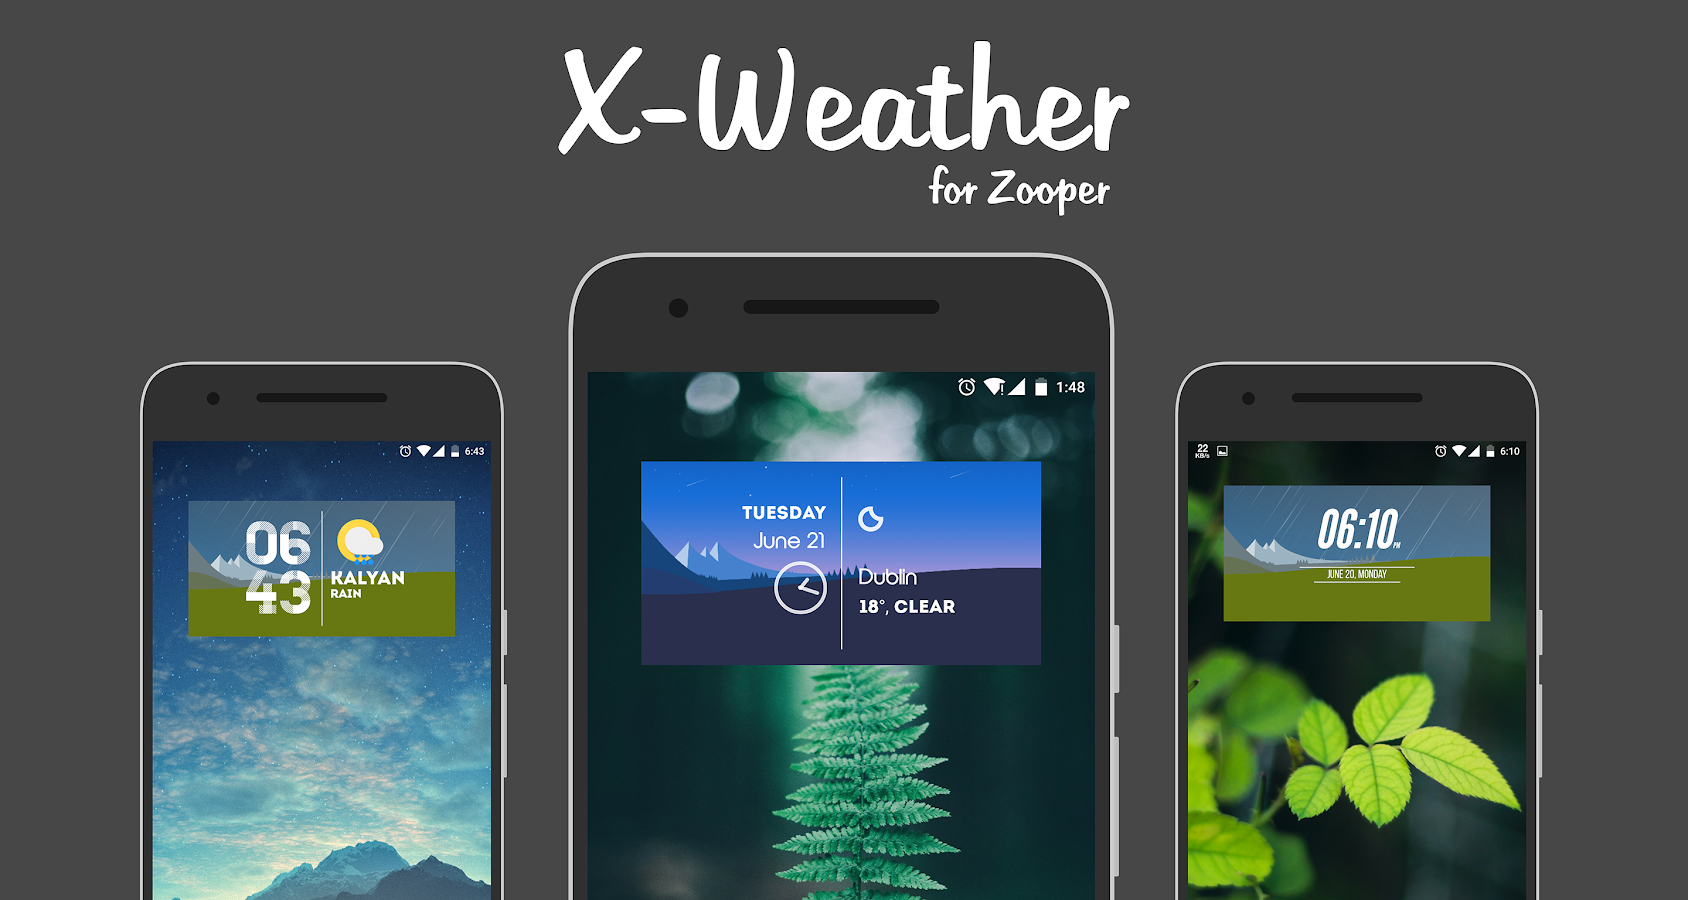 X-Weather Zooper Screenshot